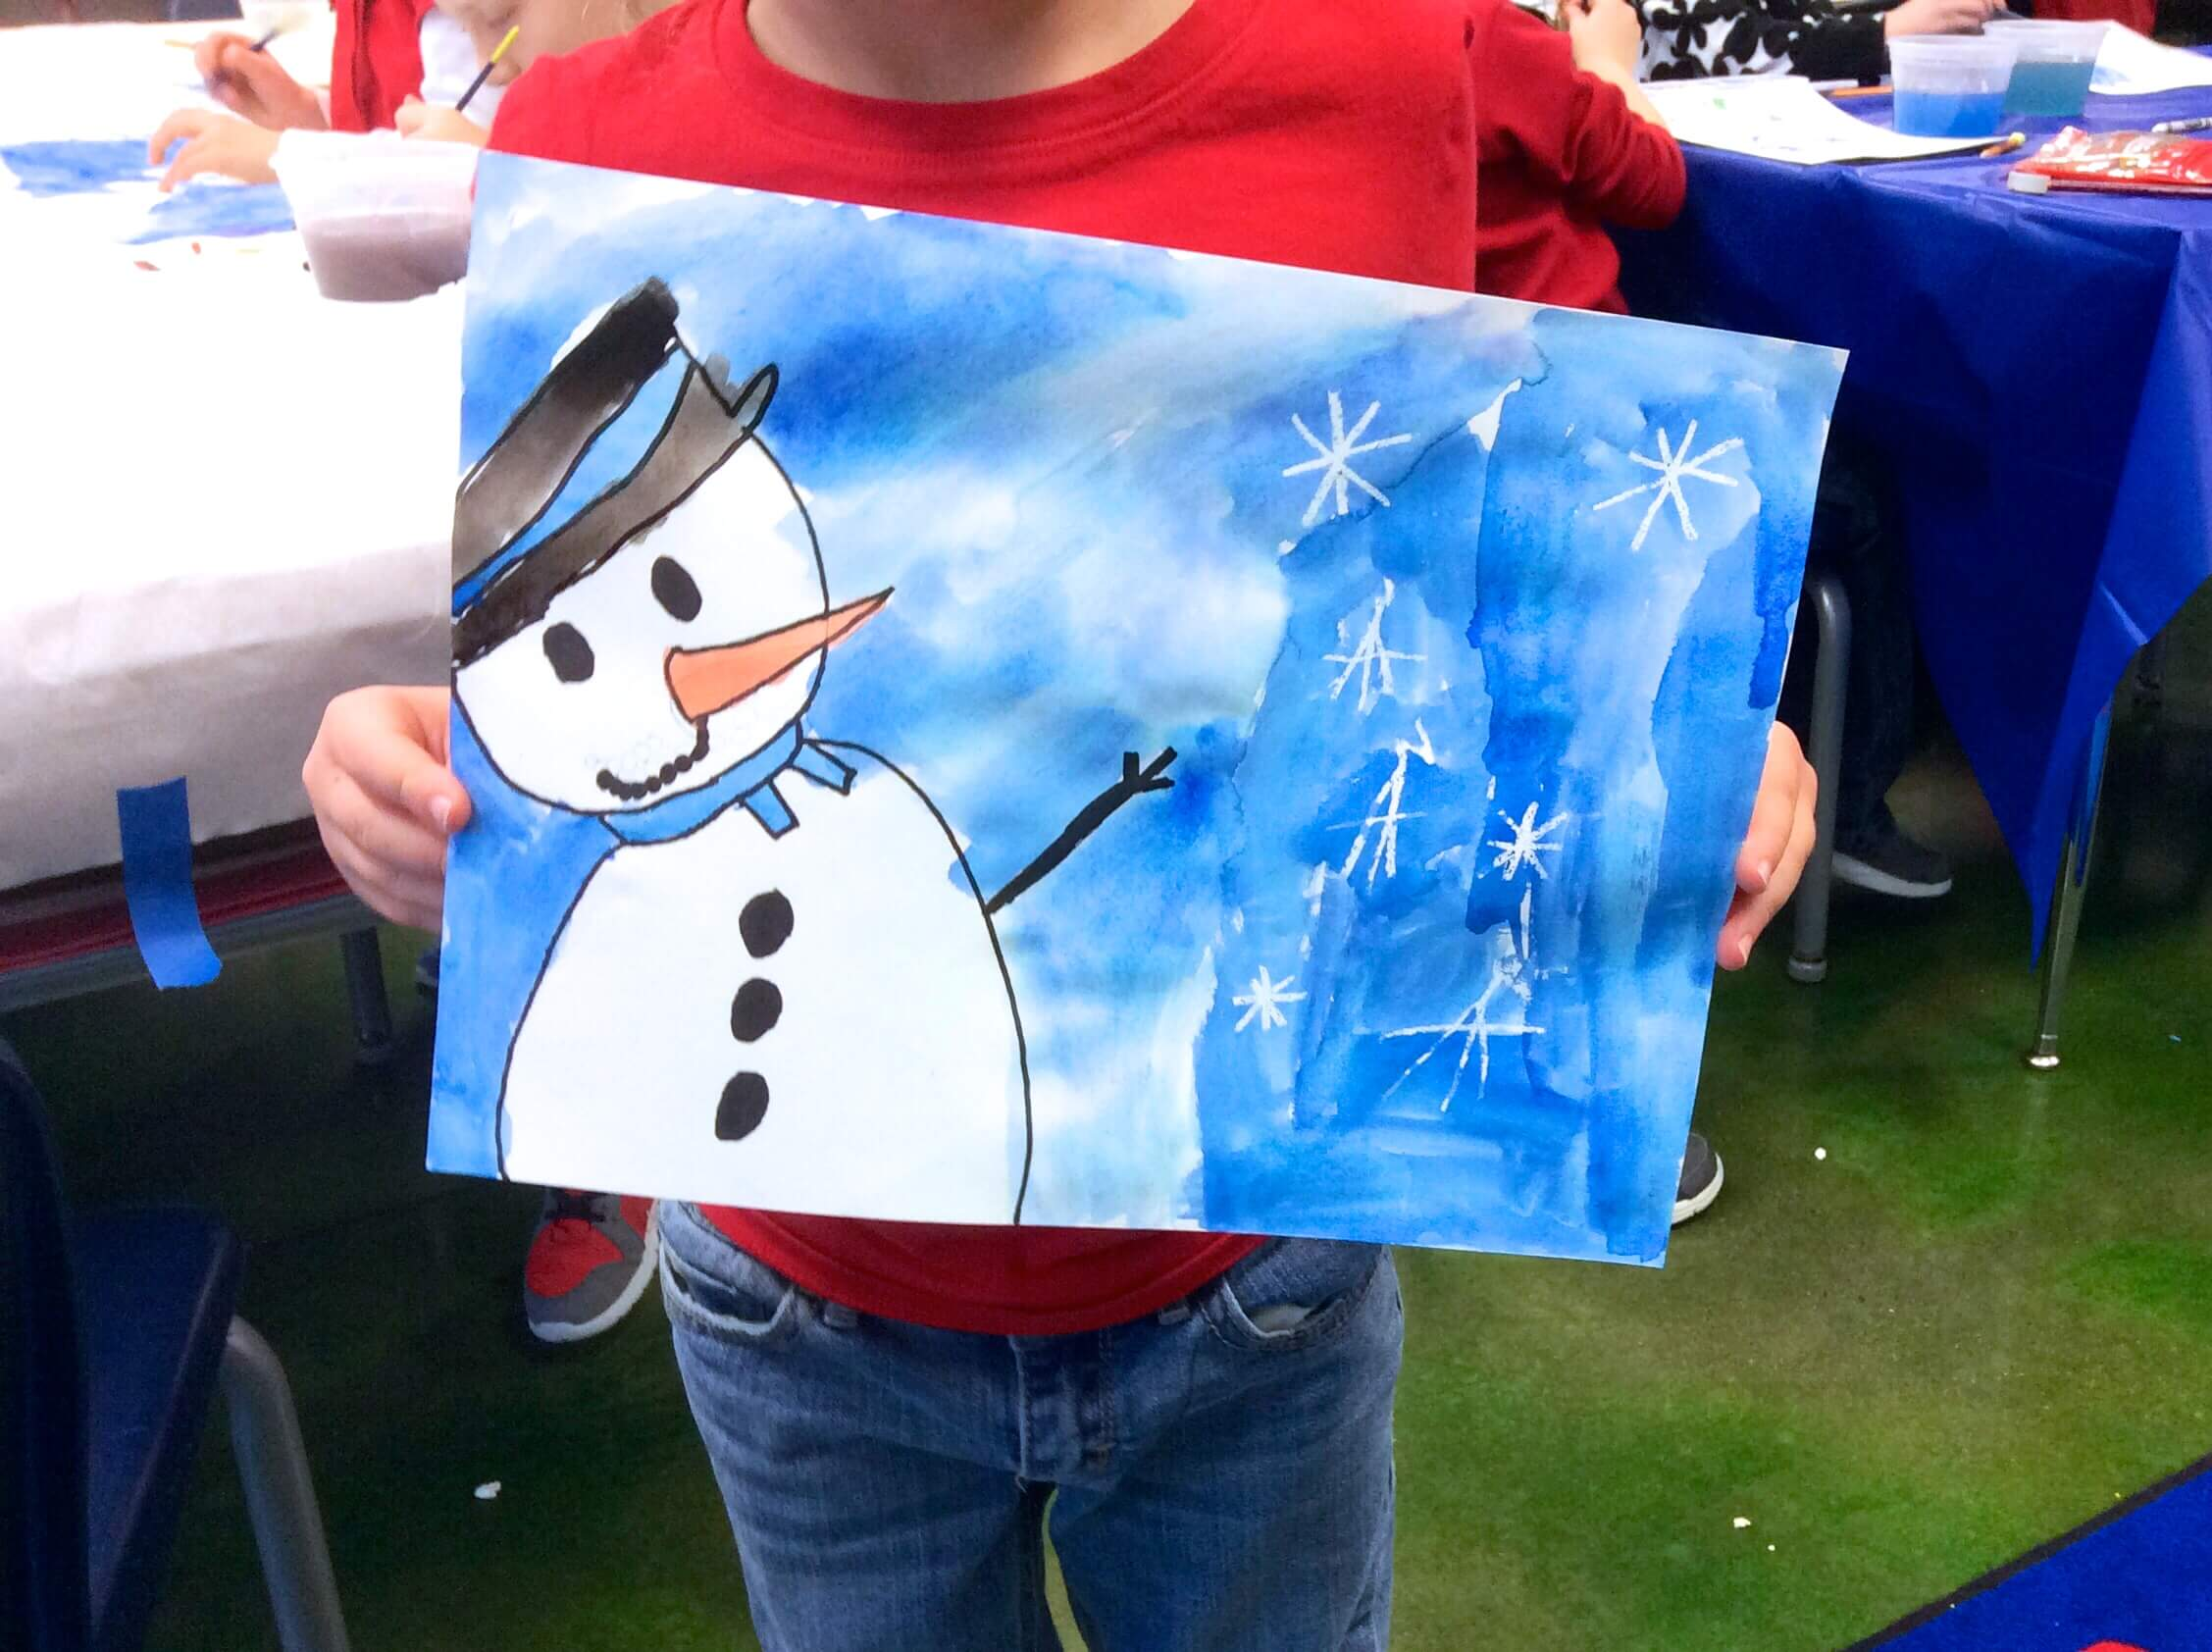 Embrace the season and give our students some hands-on opportunities to create parent gifts, directed draws, watercolor paintings, and so much more!